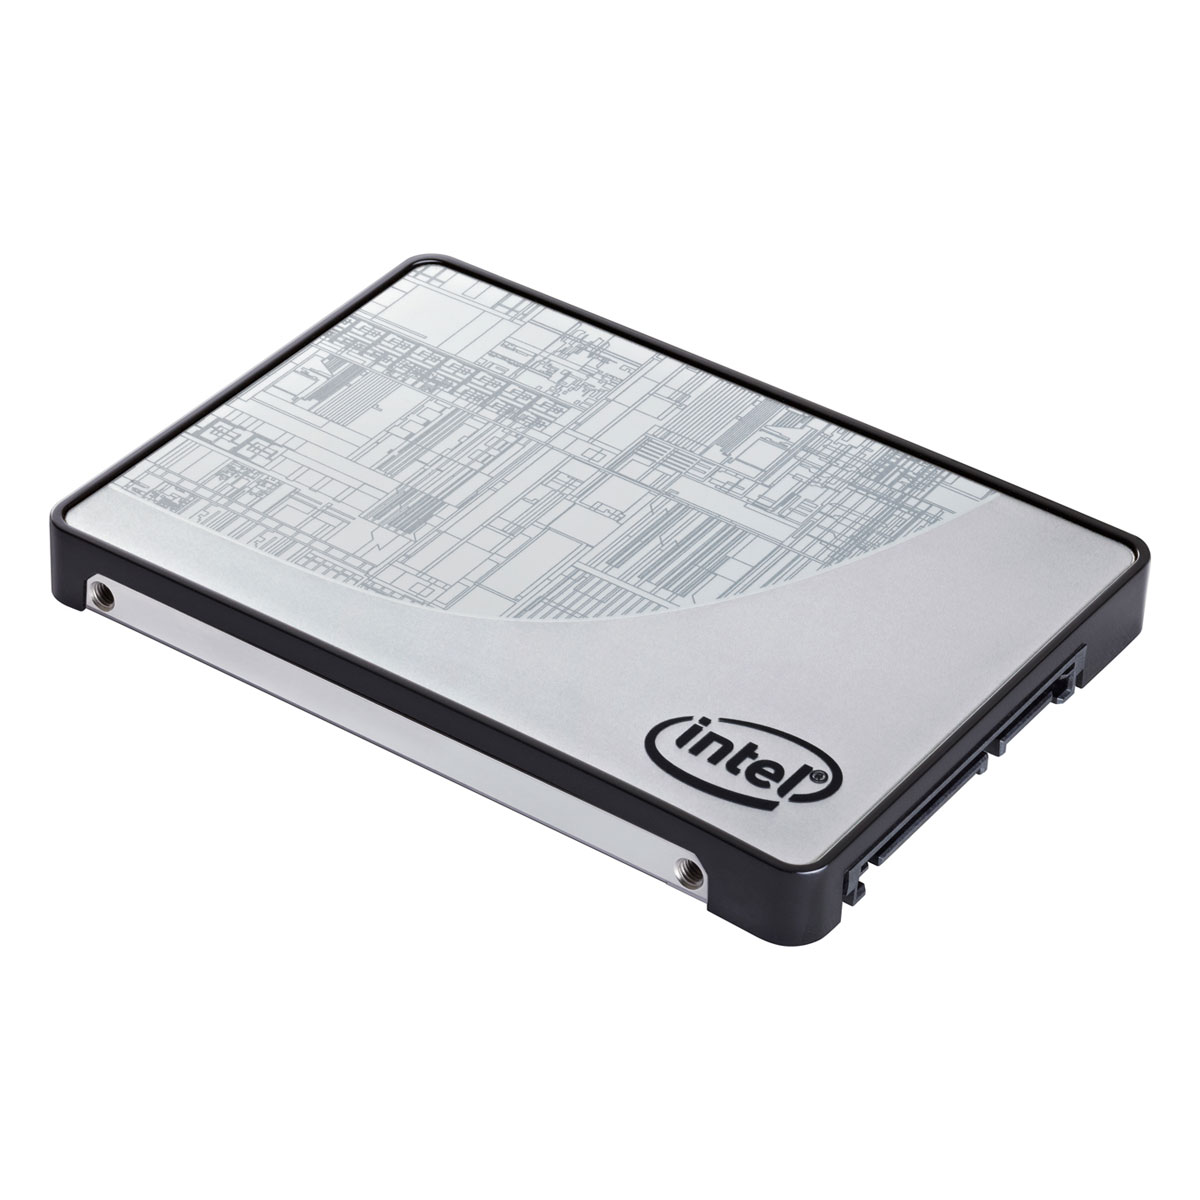 "Disque SSD Intel Solid-State Drive 335 Series 180 Go SSD 180 Go 2.5"" 9.5 mm MLC Serial ATA 6Gb/s"